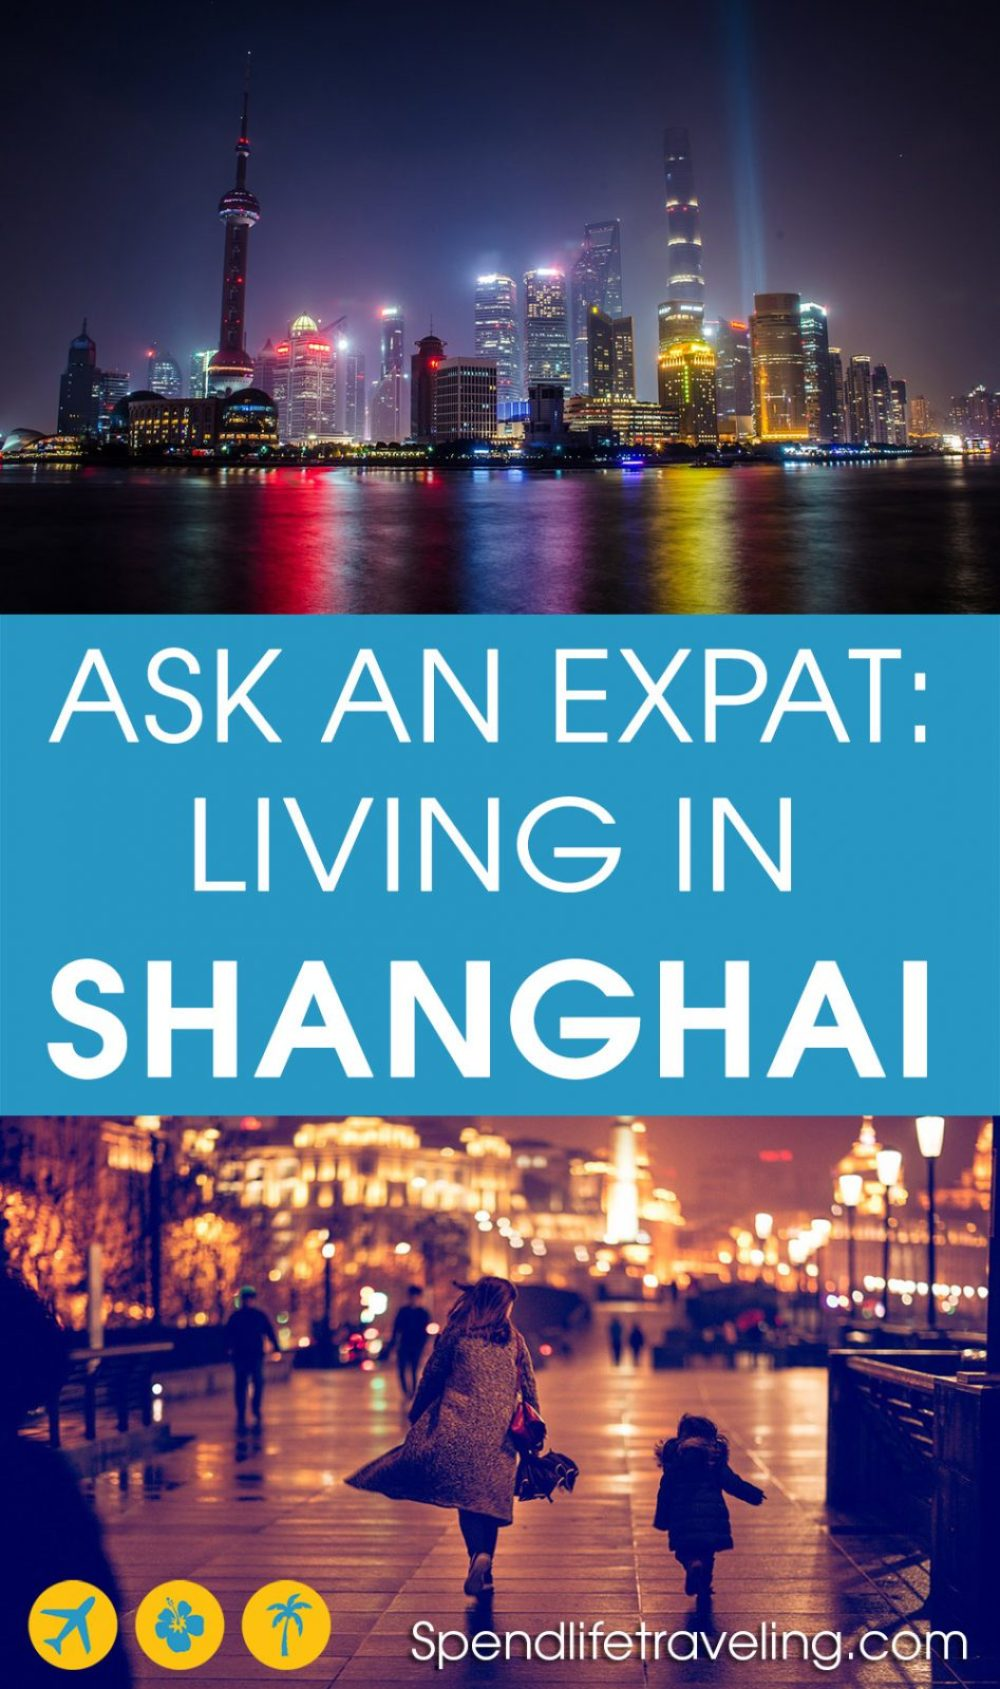 #Shanghai is a popular destination for both tourists and expats. But what is this Chinese city really like? Interview with an #expat about moving to and living in Shanghai. #expatlife #moveabroad #workabroad #liveabroad